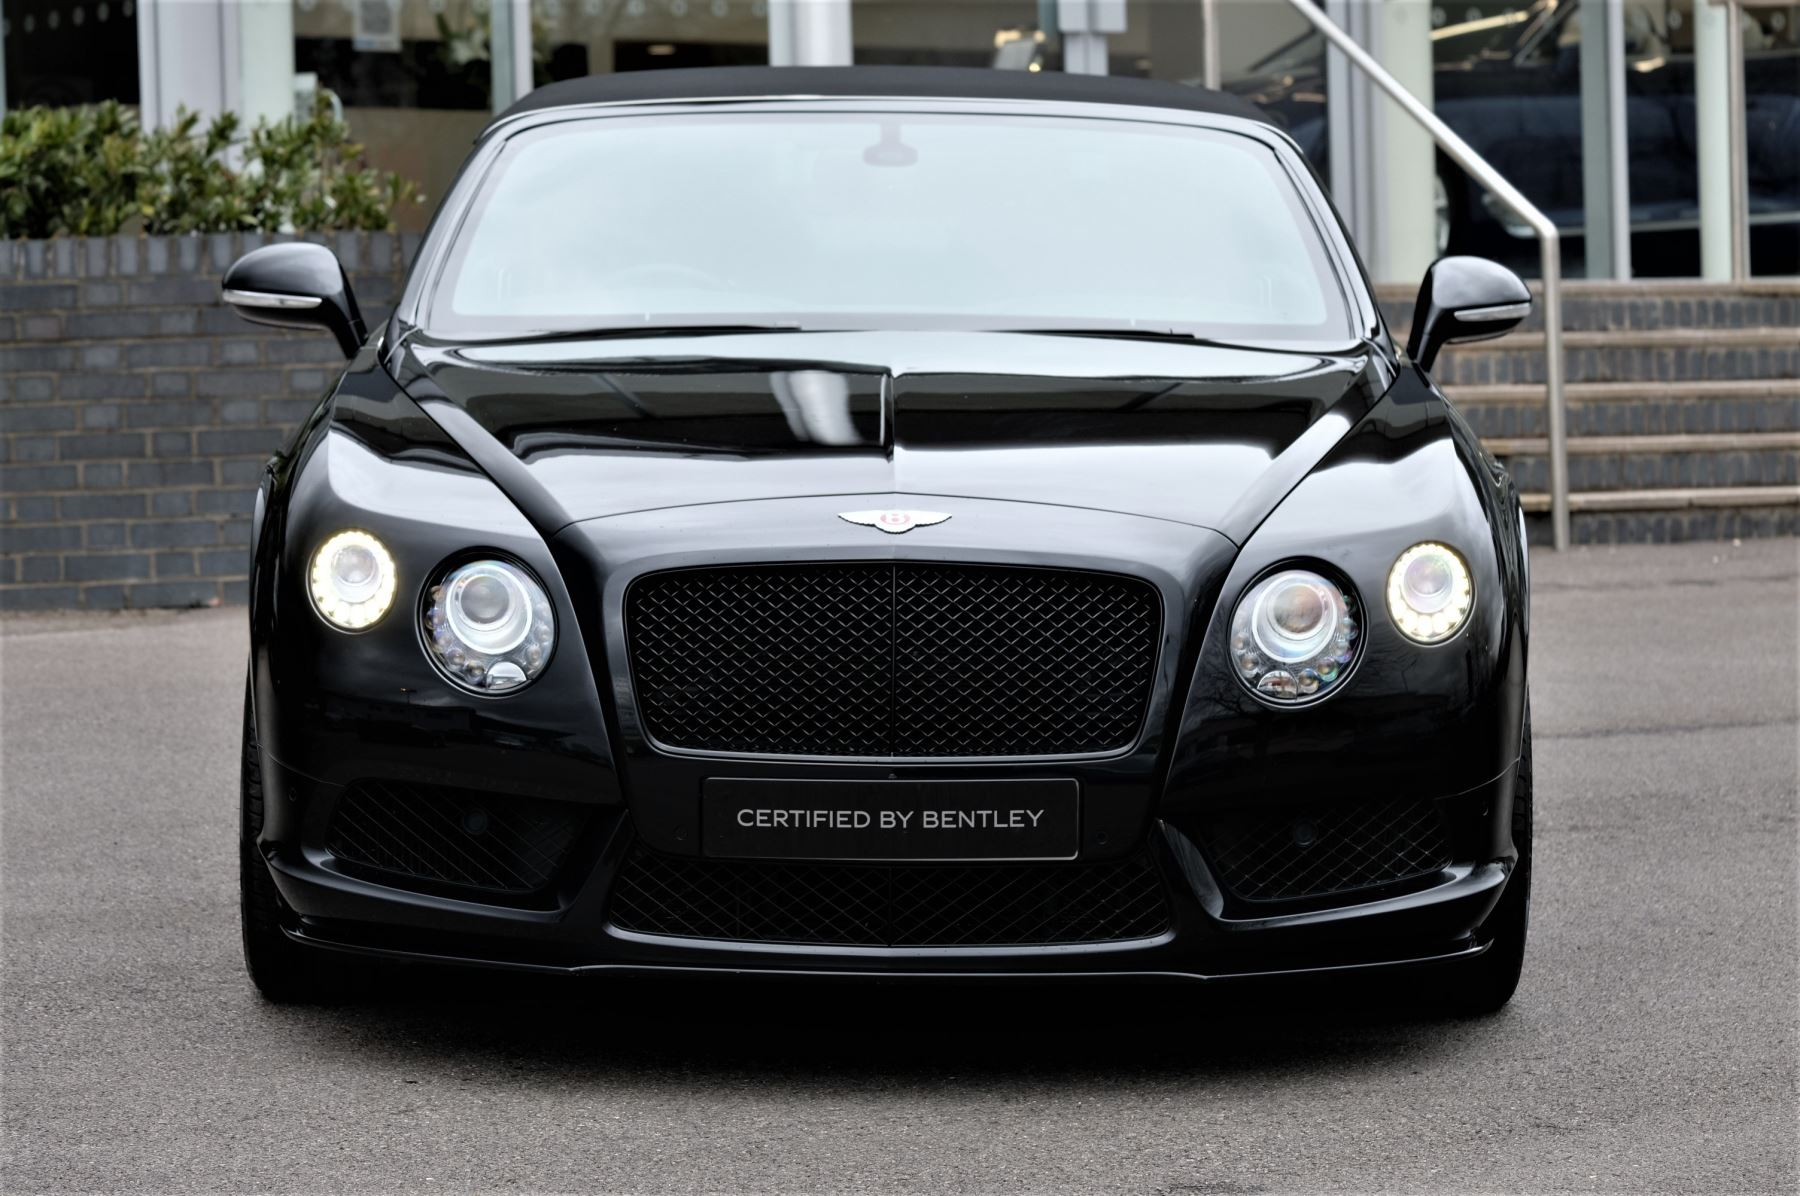 Bentley Continental GT V8 S Convertible Black Edition 4.0 V8 S 2dr - Concours Series  image 2